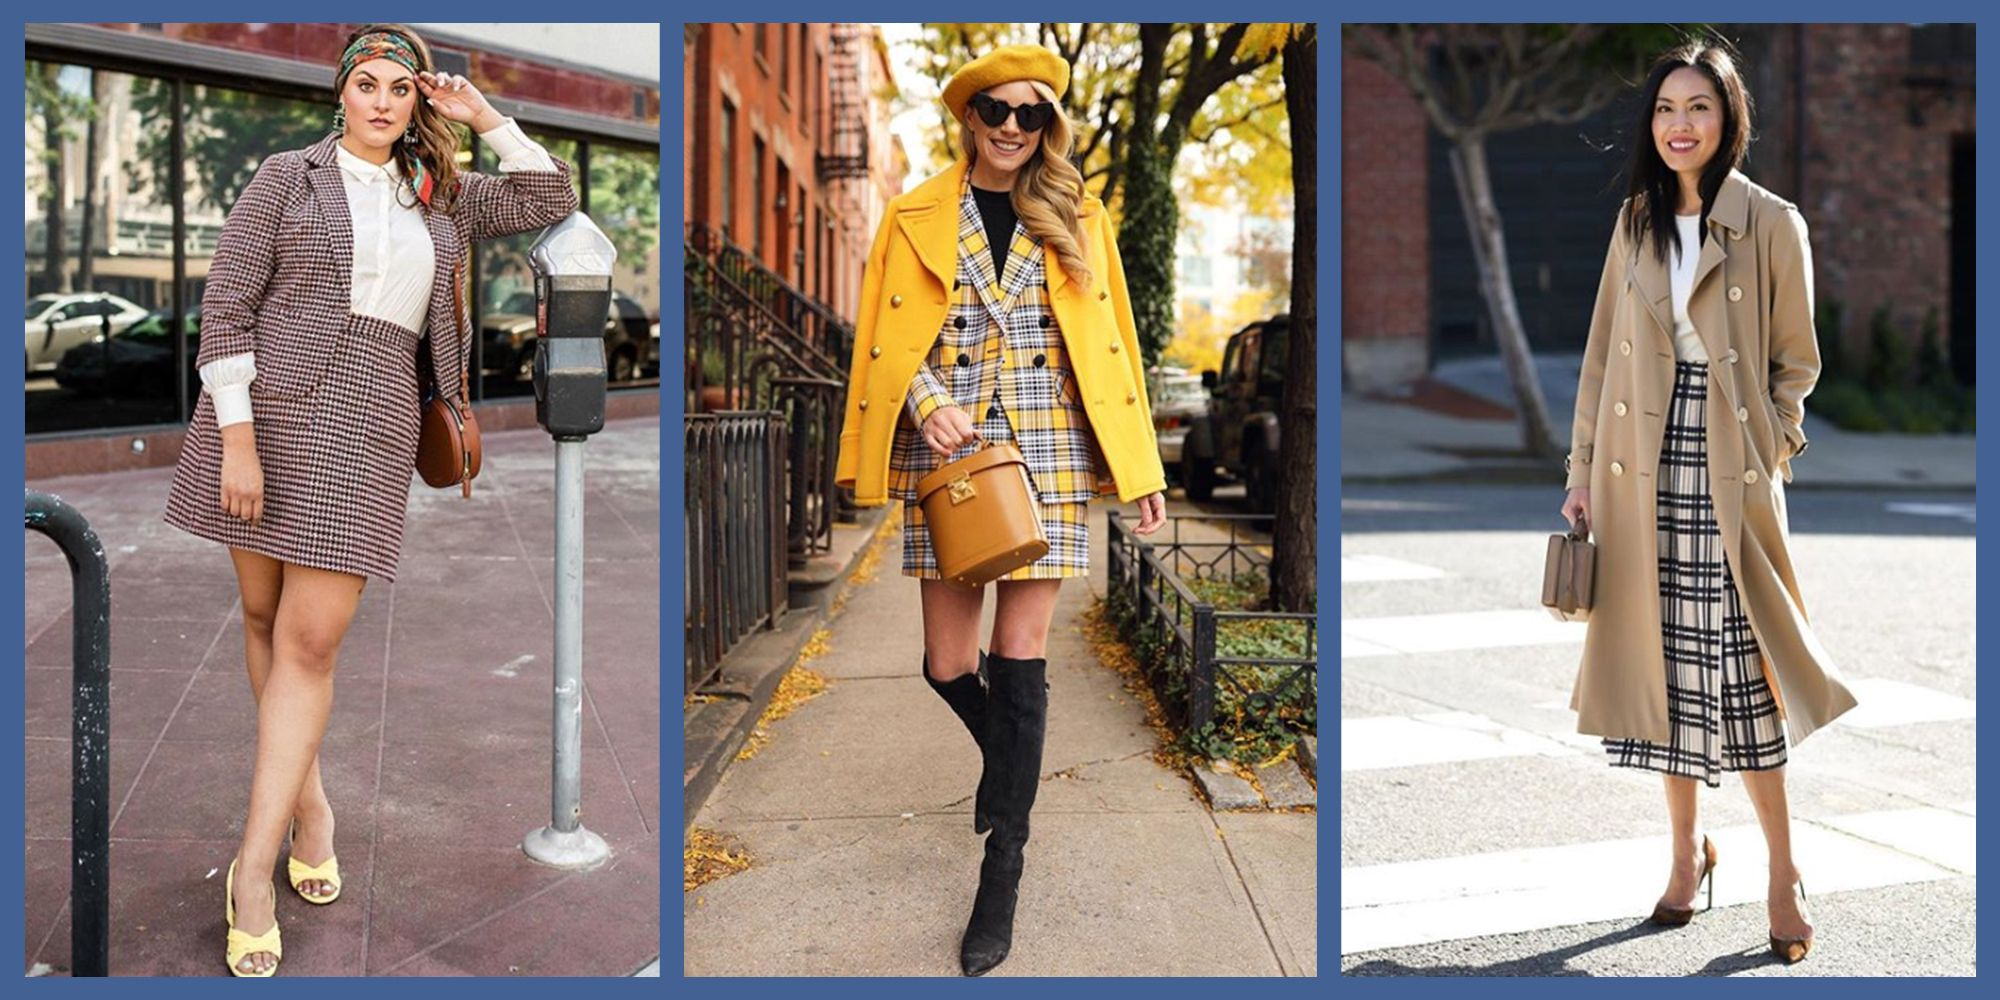 7 Plaid Skirt Outfit Ideas - How to Wear a Plaid Skirt This Fall